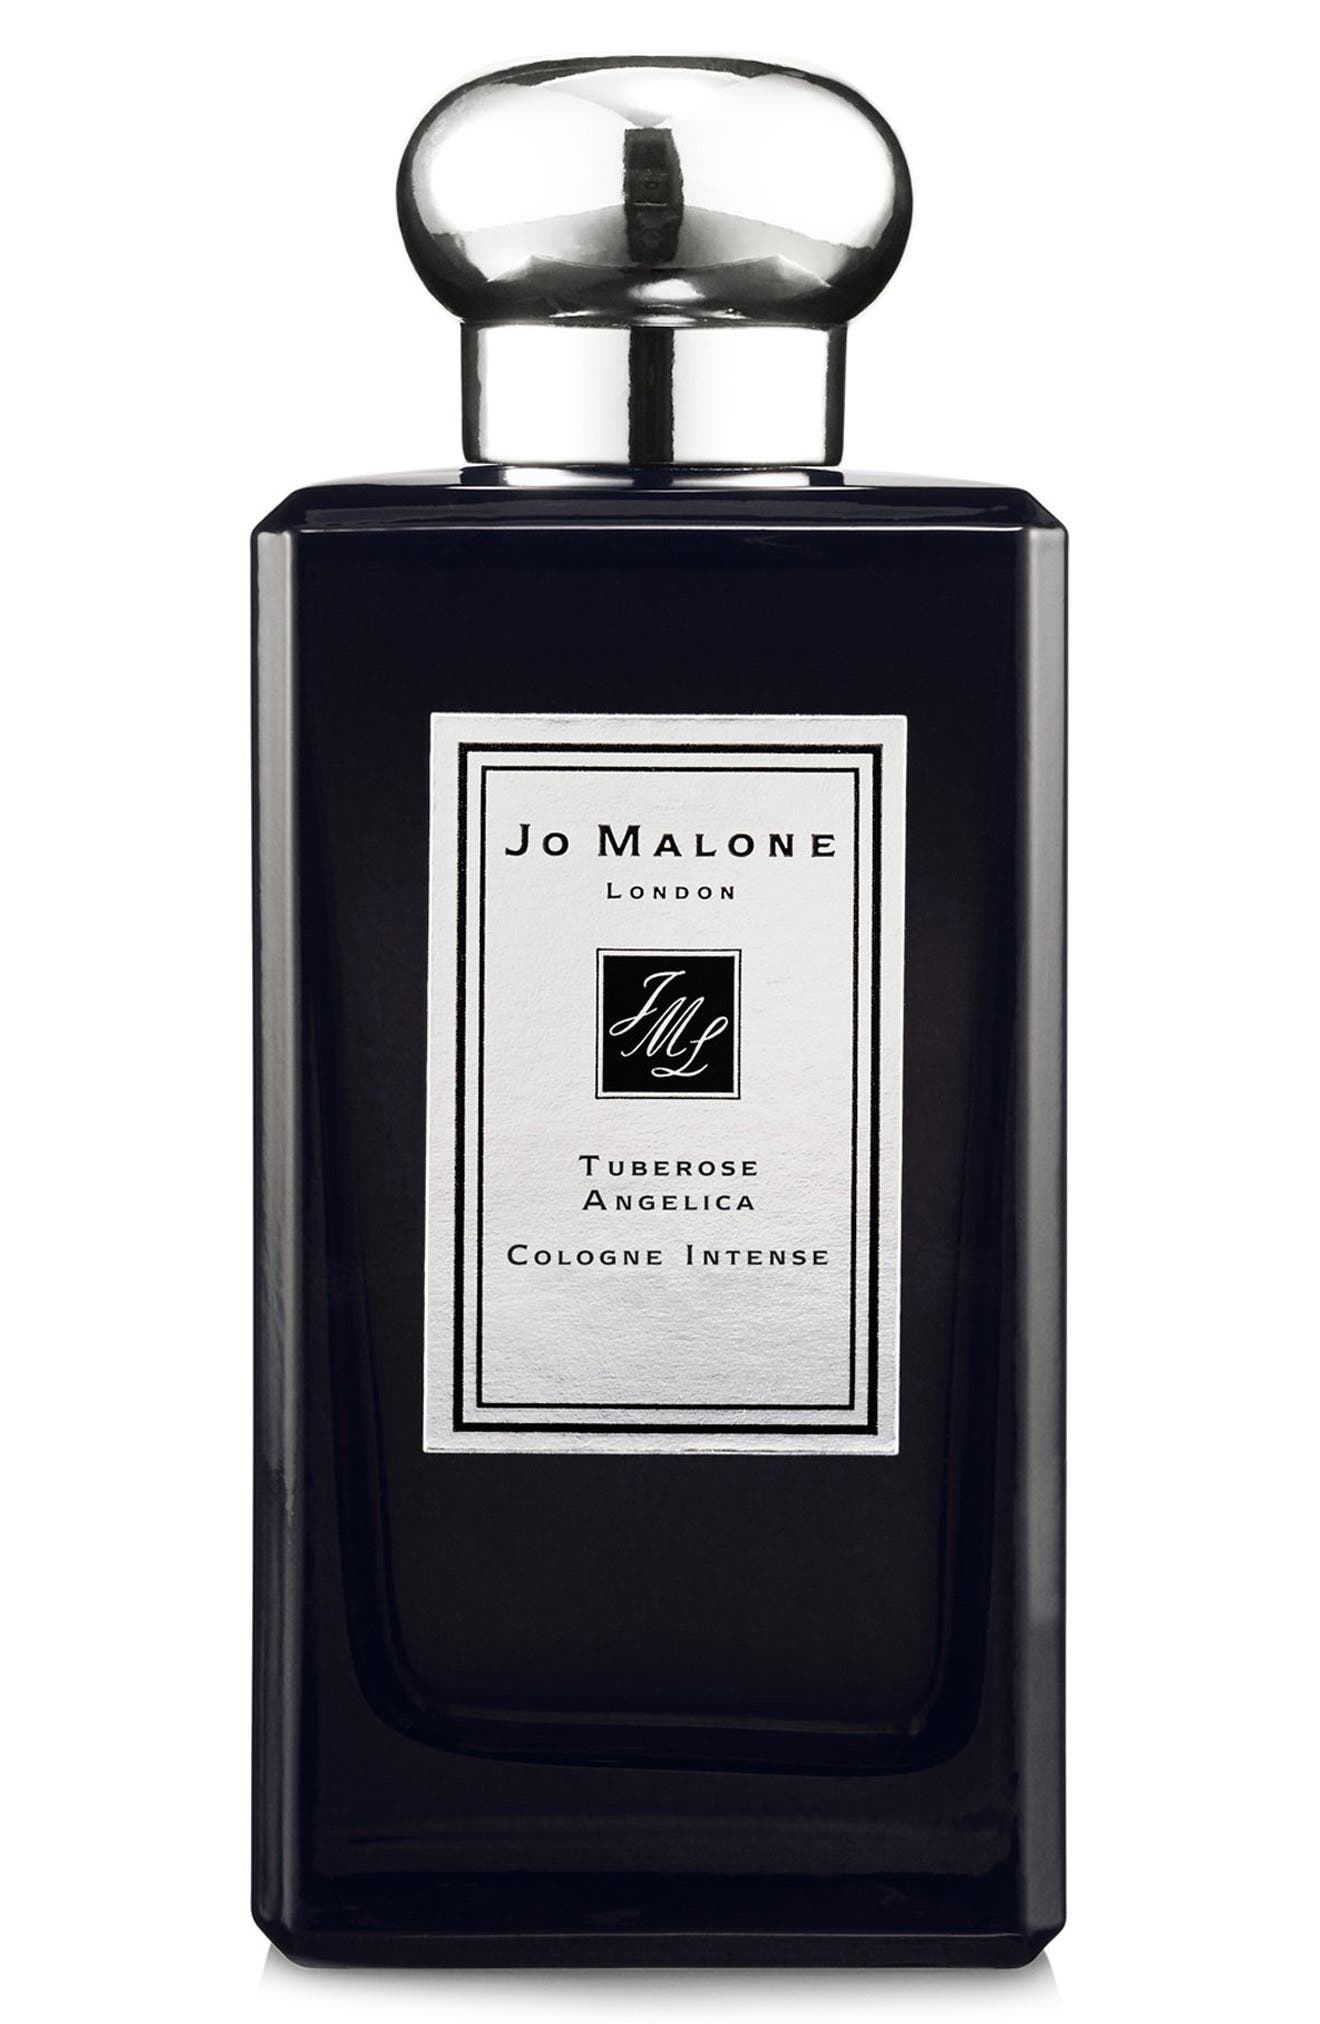 Jo Malone London™ Tuberose Angelica Cologne Intense